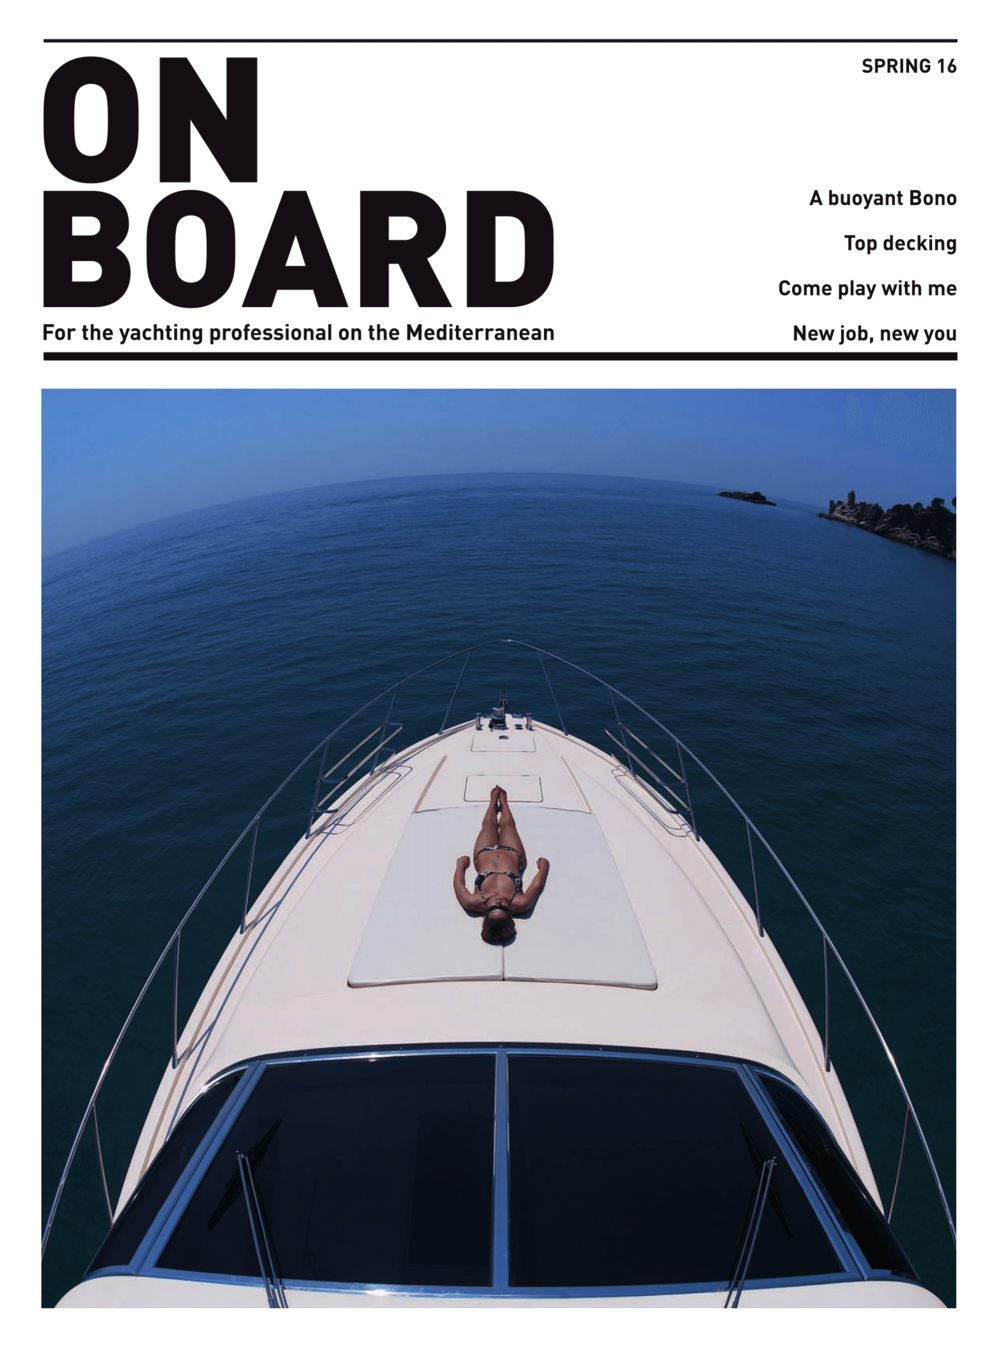 ONBOARD Magazine Spring 2016-1.png